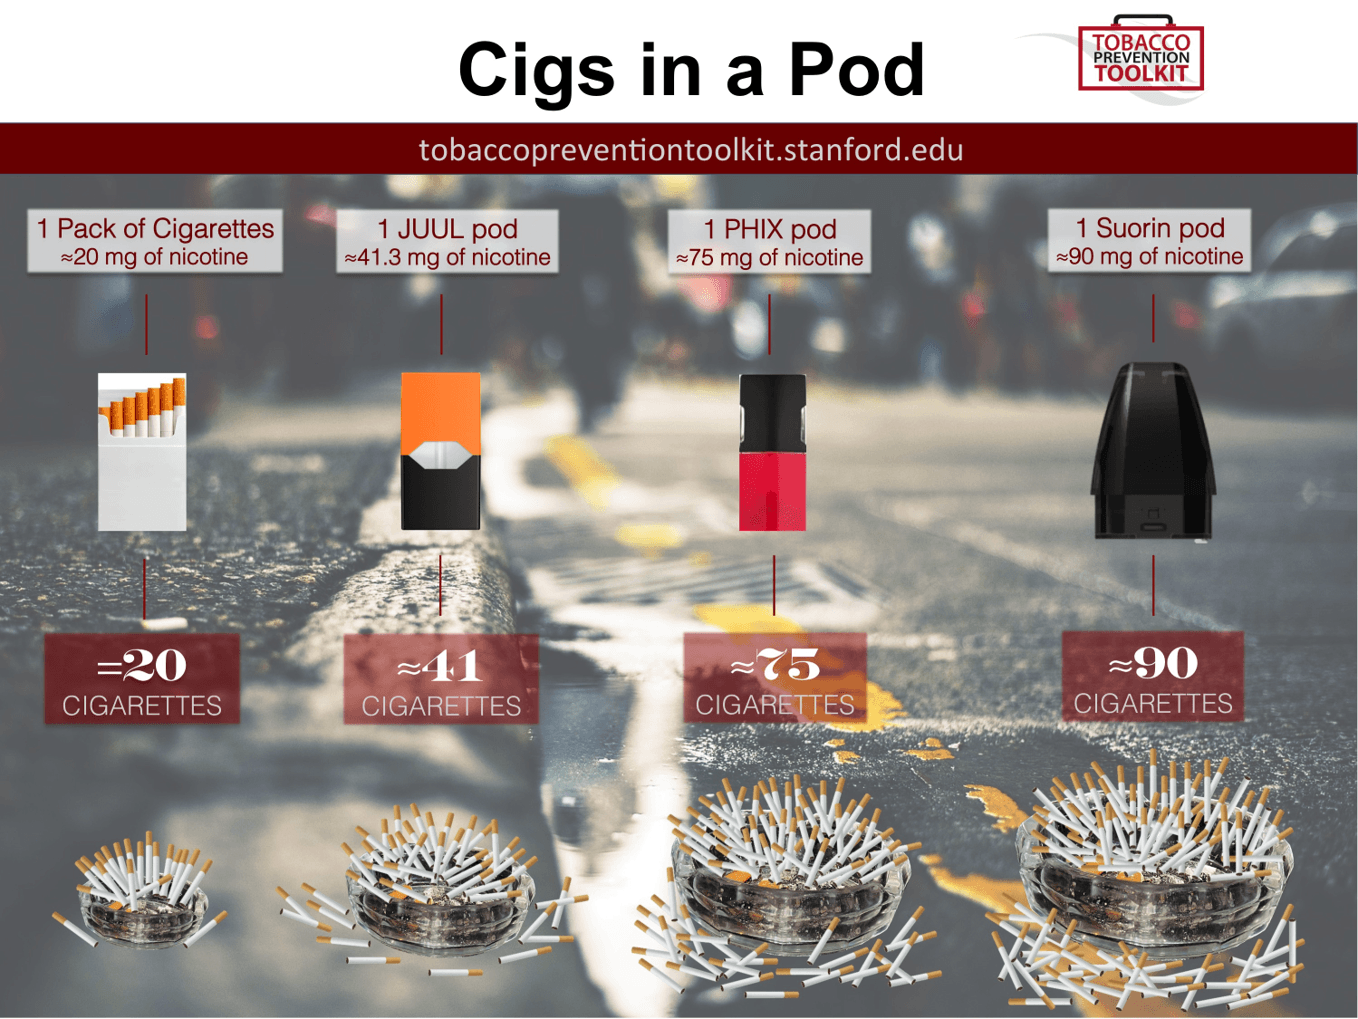 Stanford - number of cigarettes in a pod